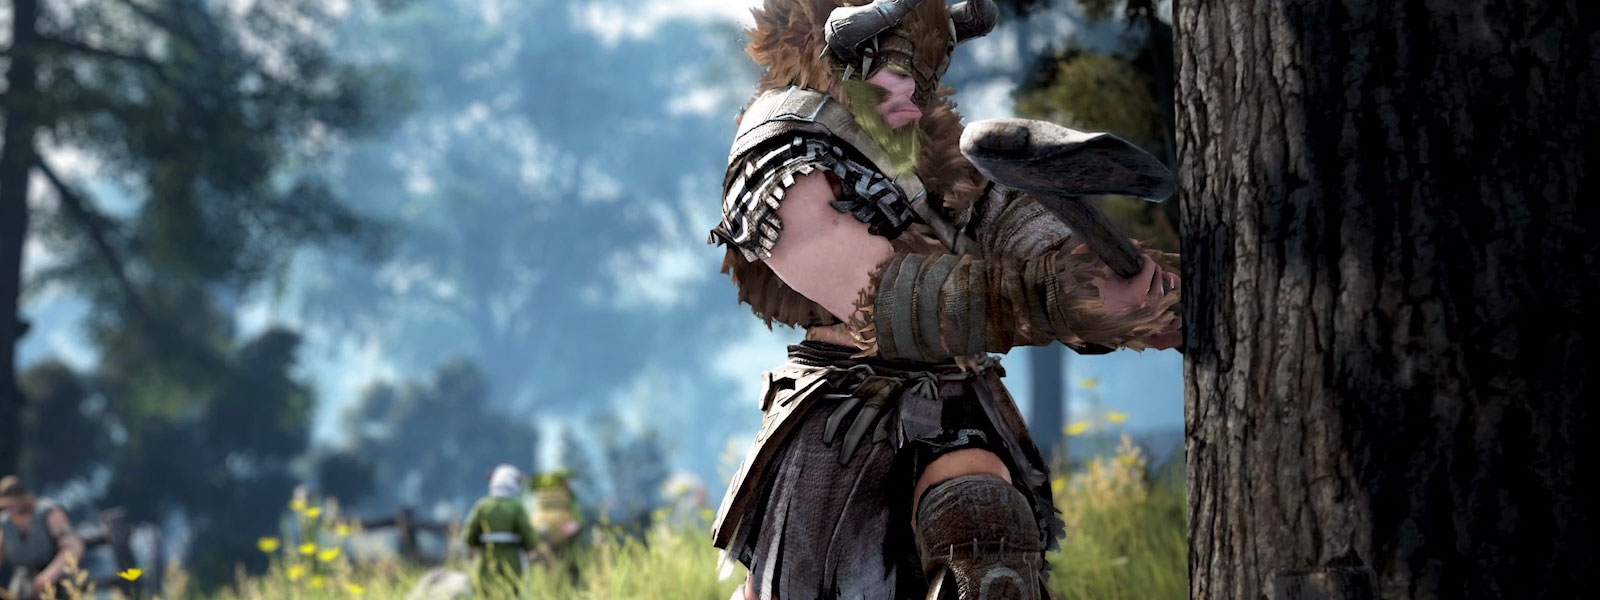 Black Desert For Xbox One: Become Your True Self | Xbox